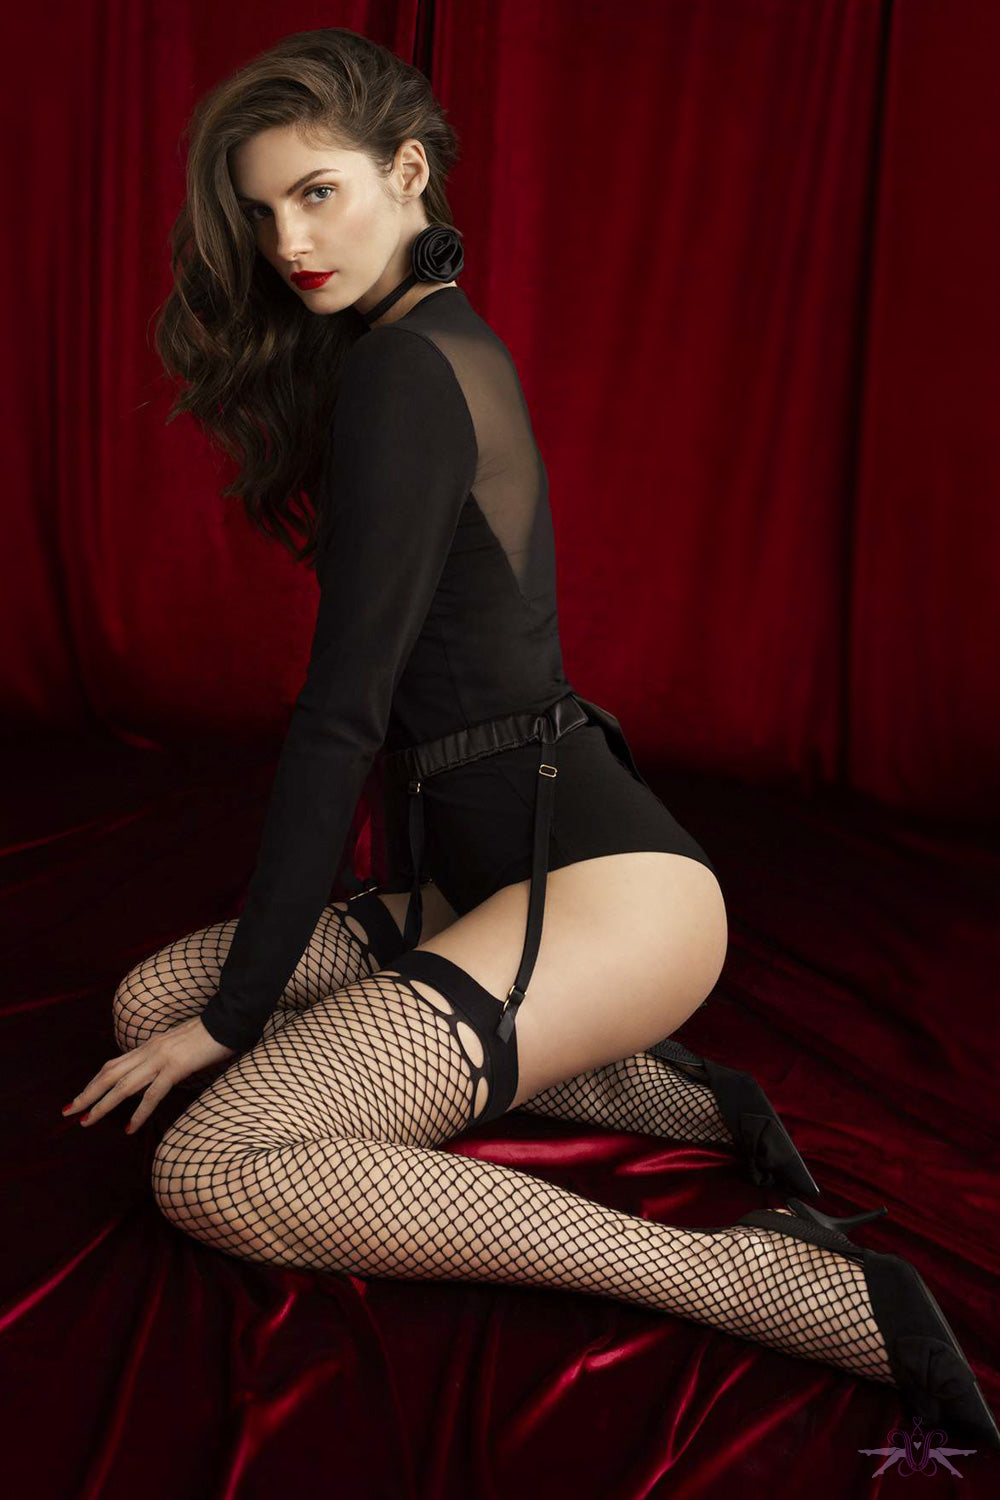 Fiore Sensual Burlesque Fishnet Stockings